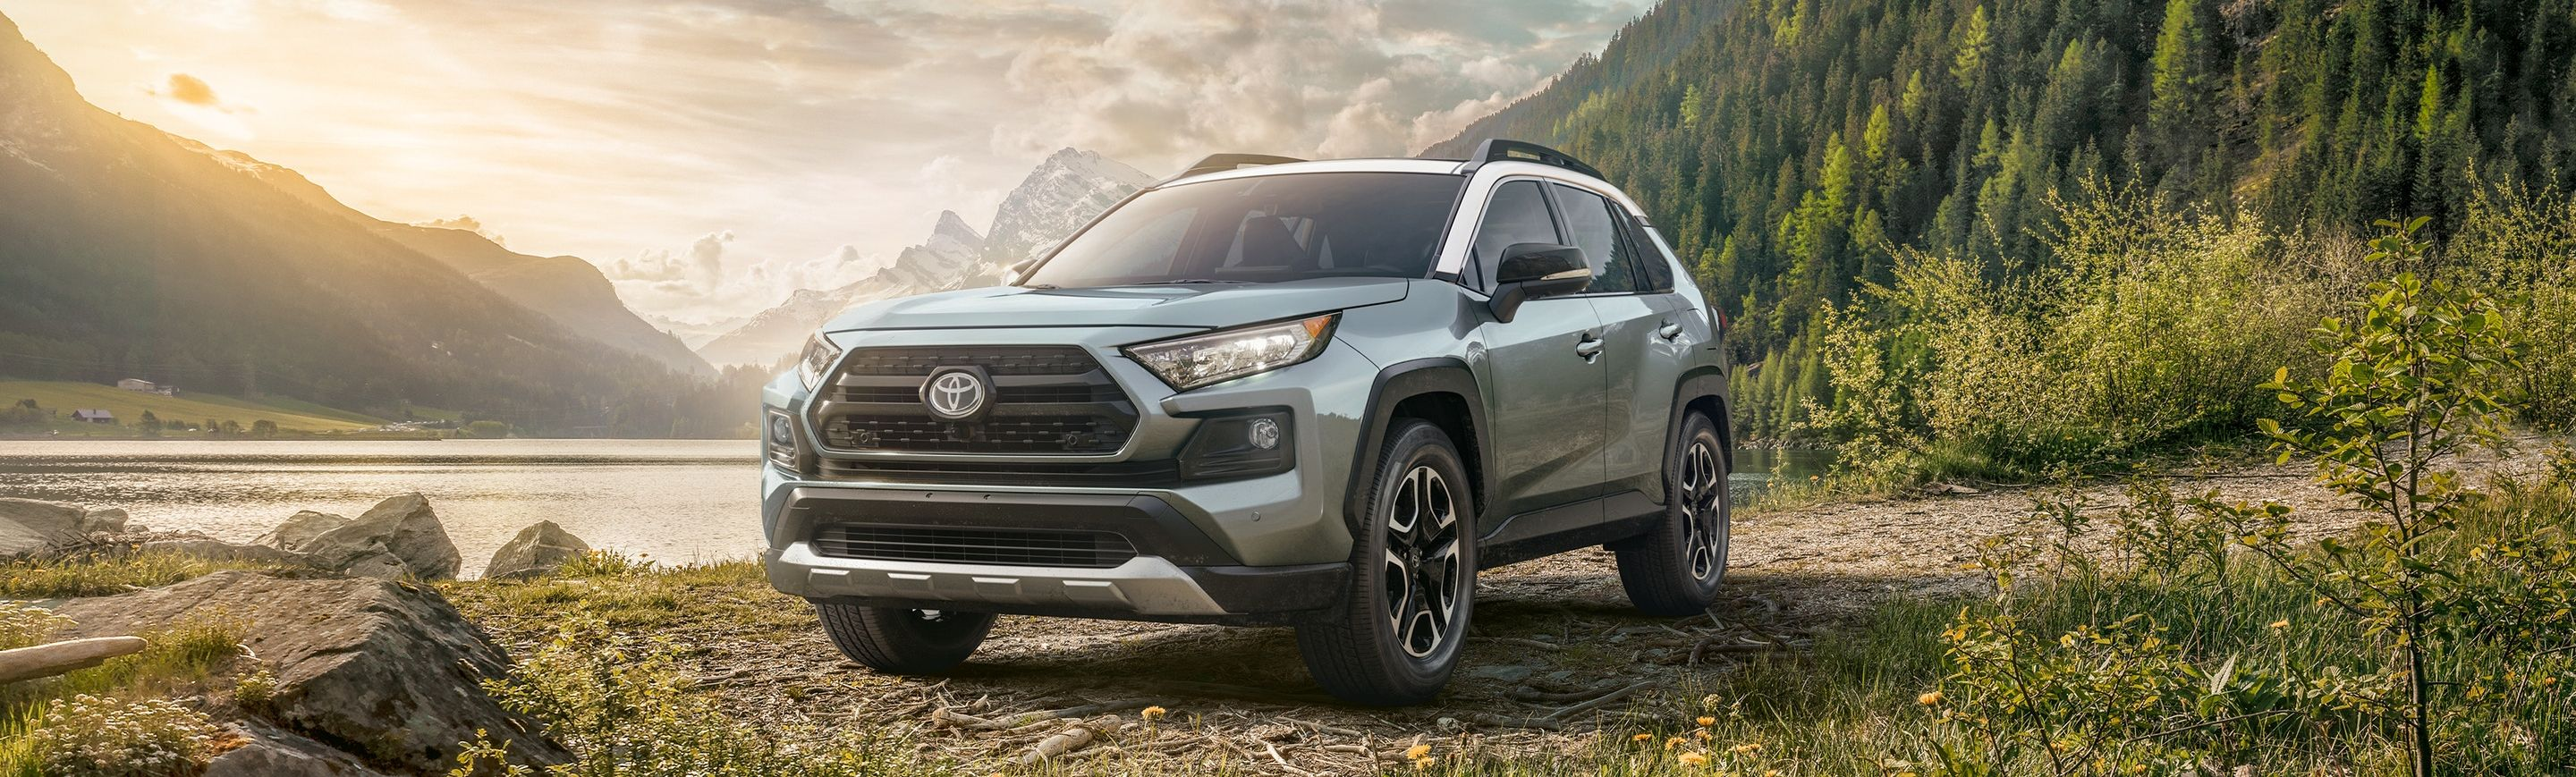 2019 Toyota RAV4 for Sale near Cleveland, OH